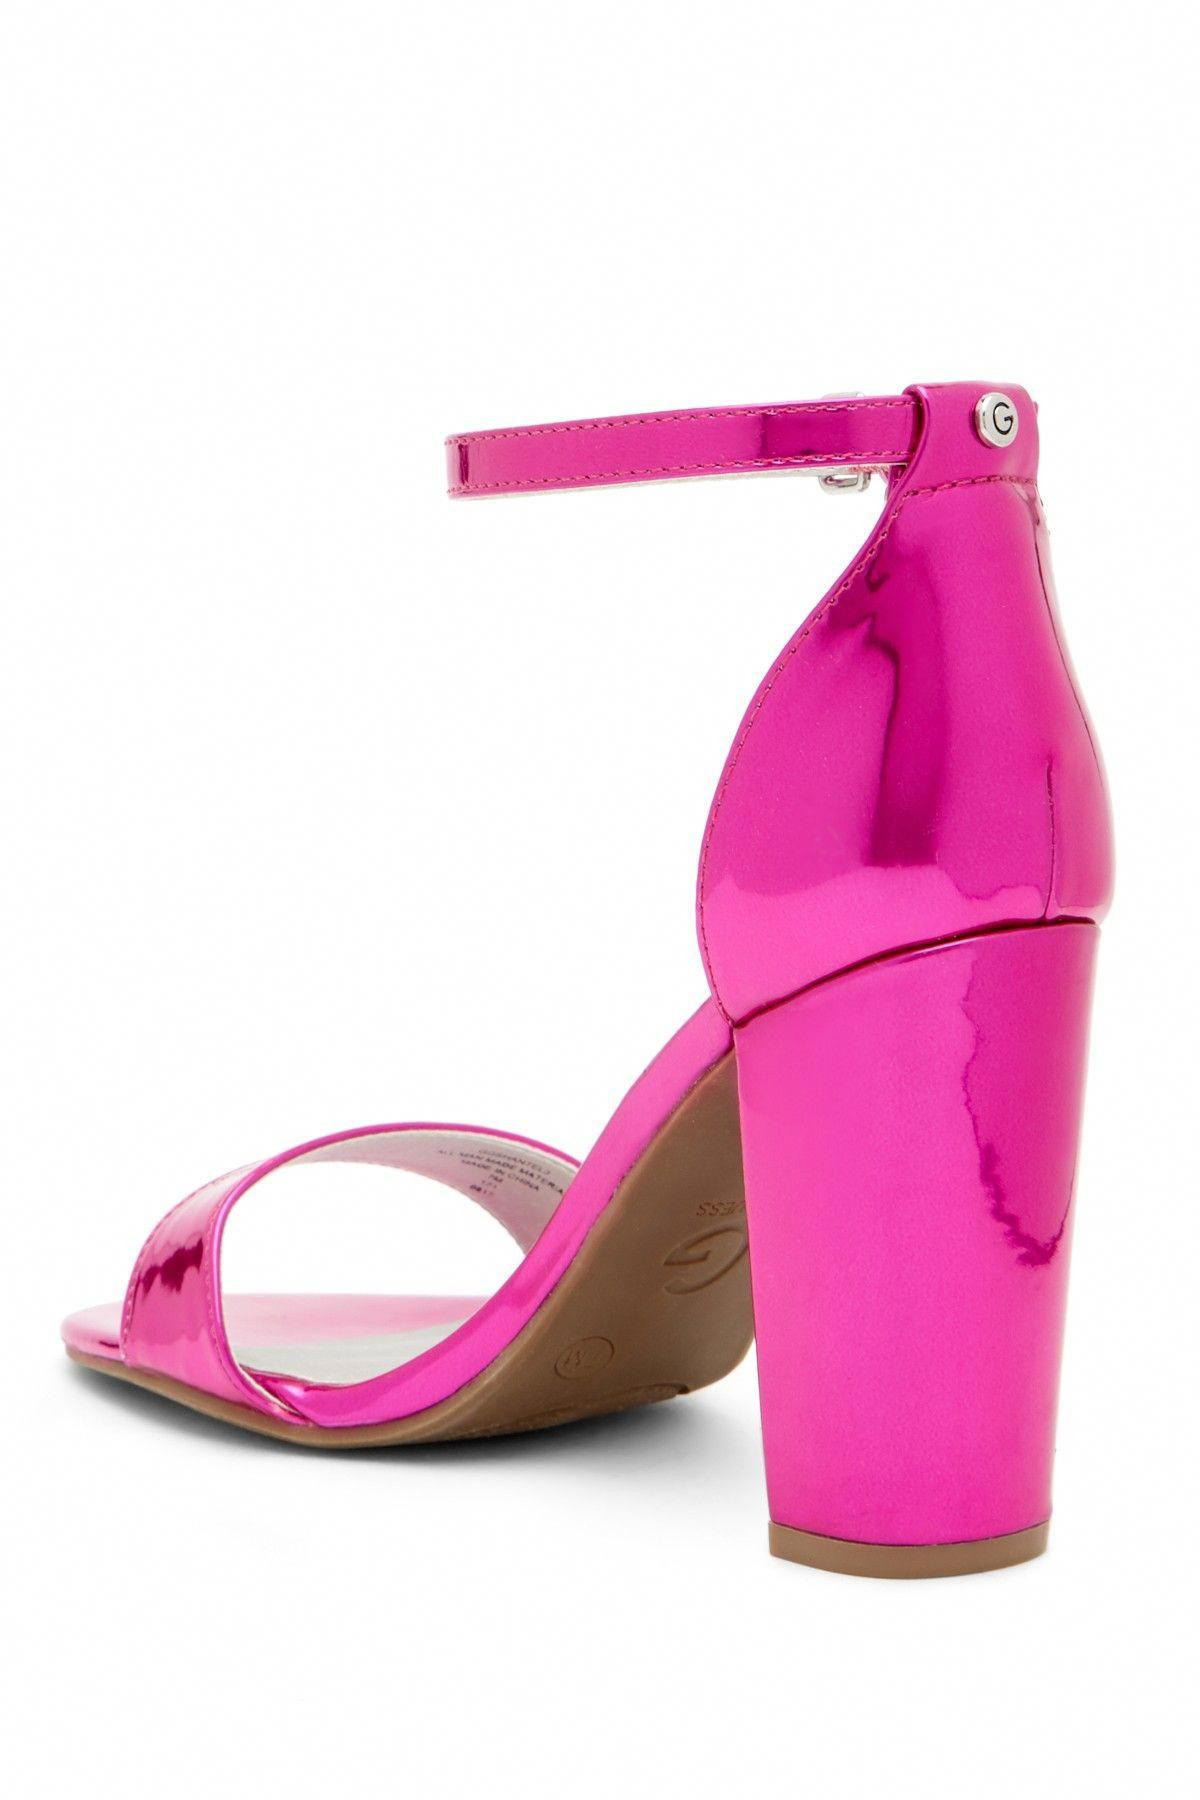 f159a47f499 Shantel Ankle Strap Heeled Sandal by G by GUESS on  nordstrom rack   StilettoHeels